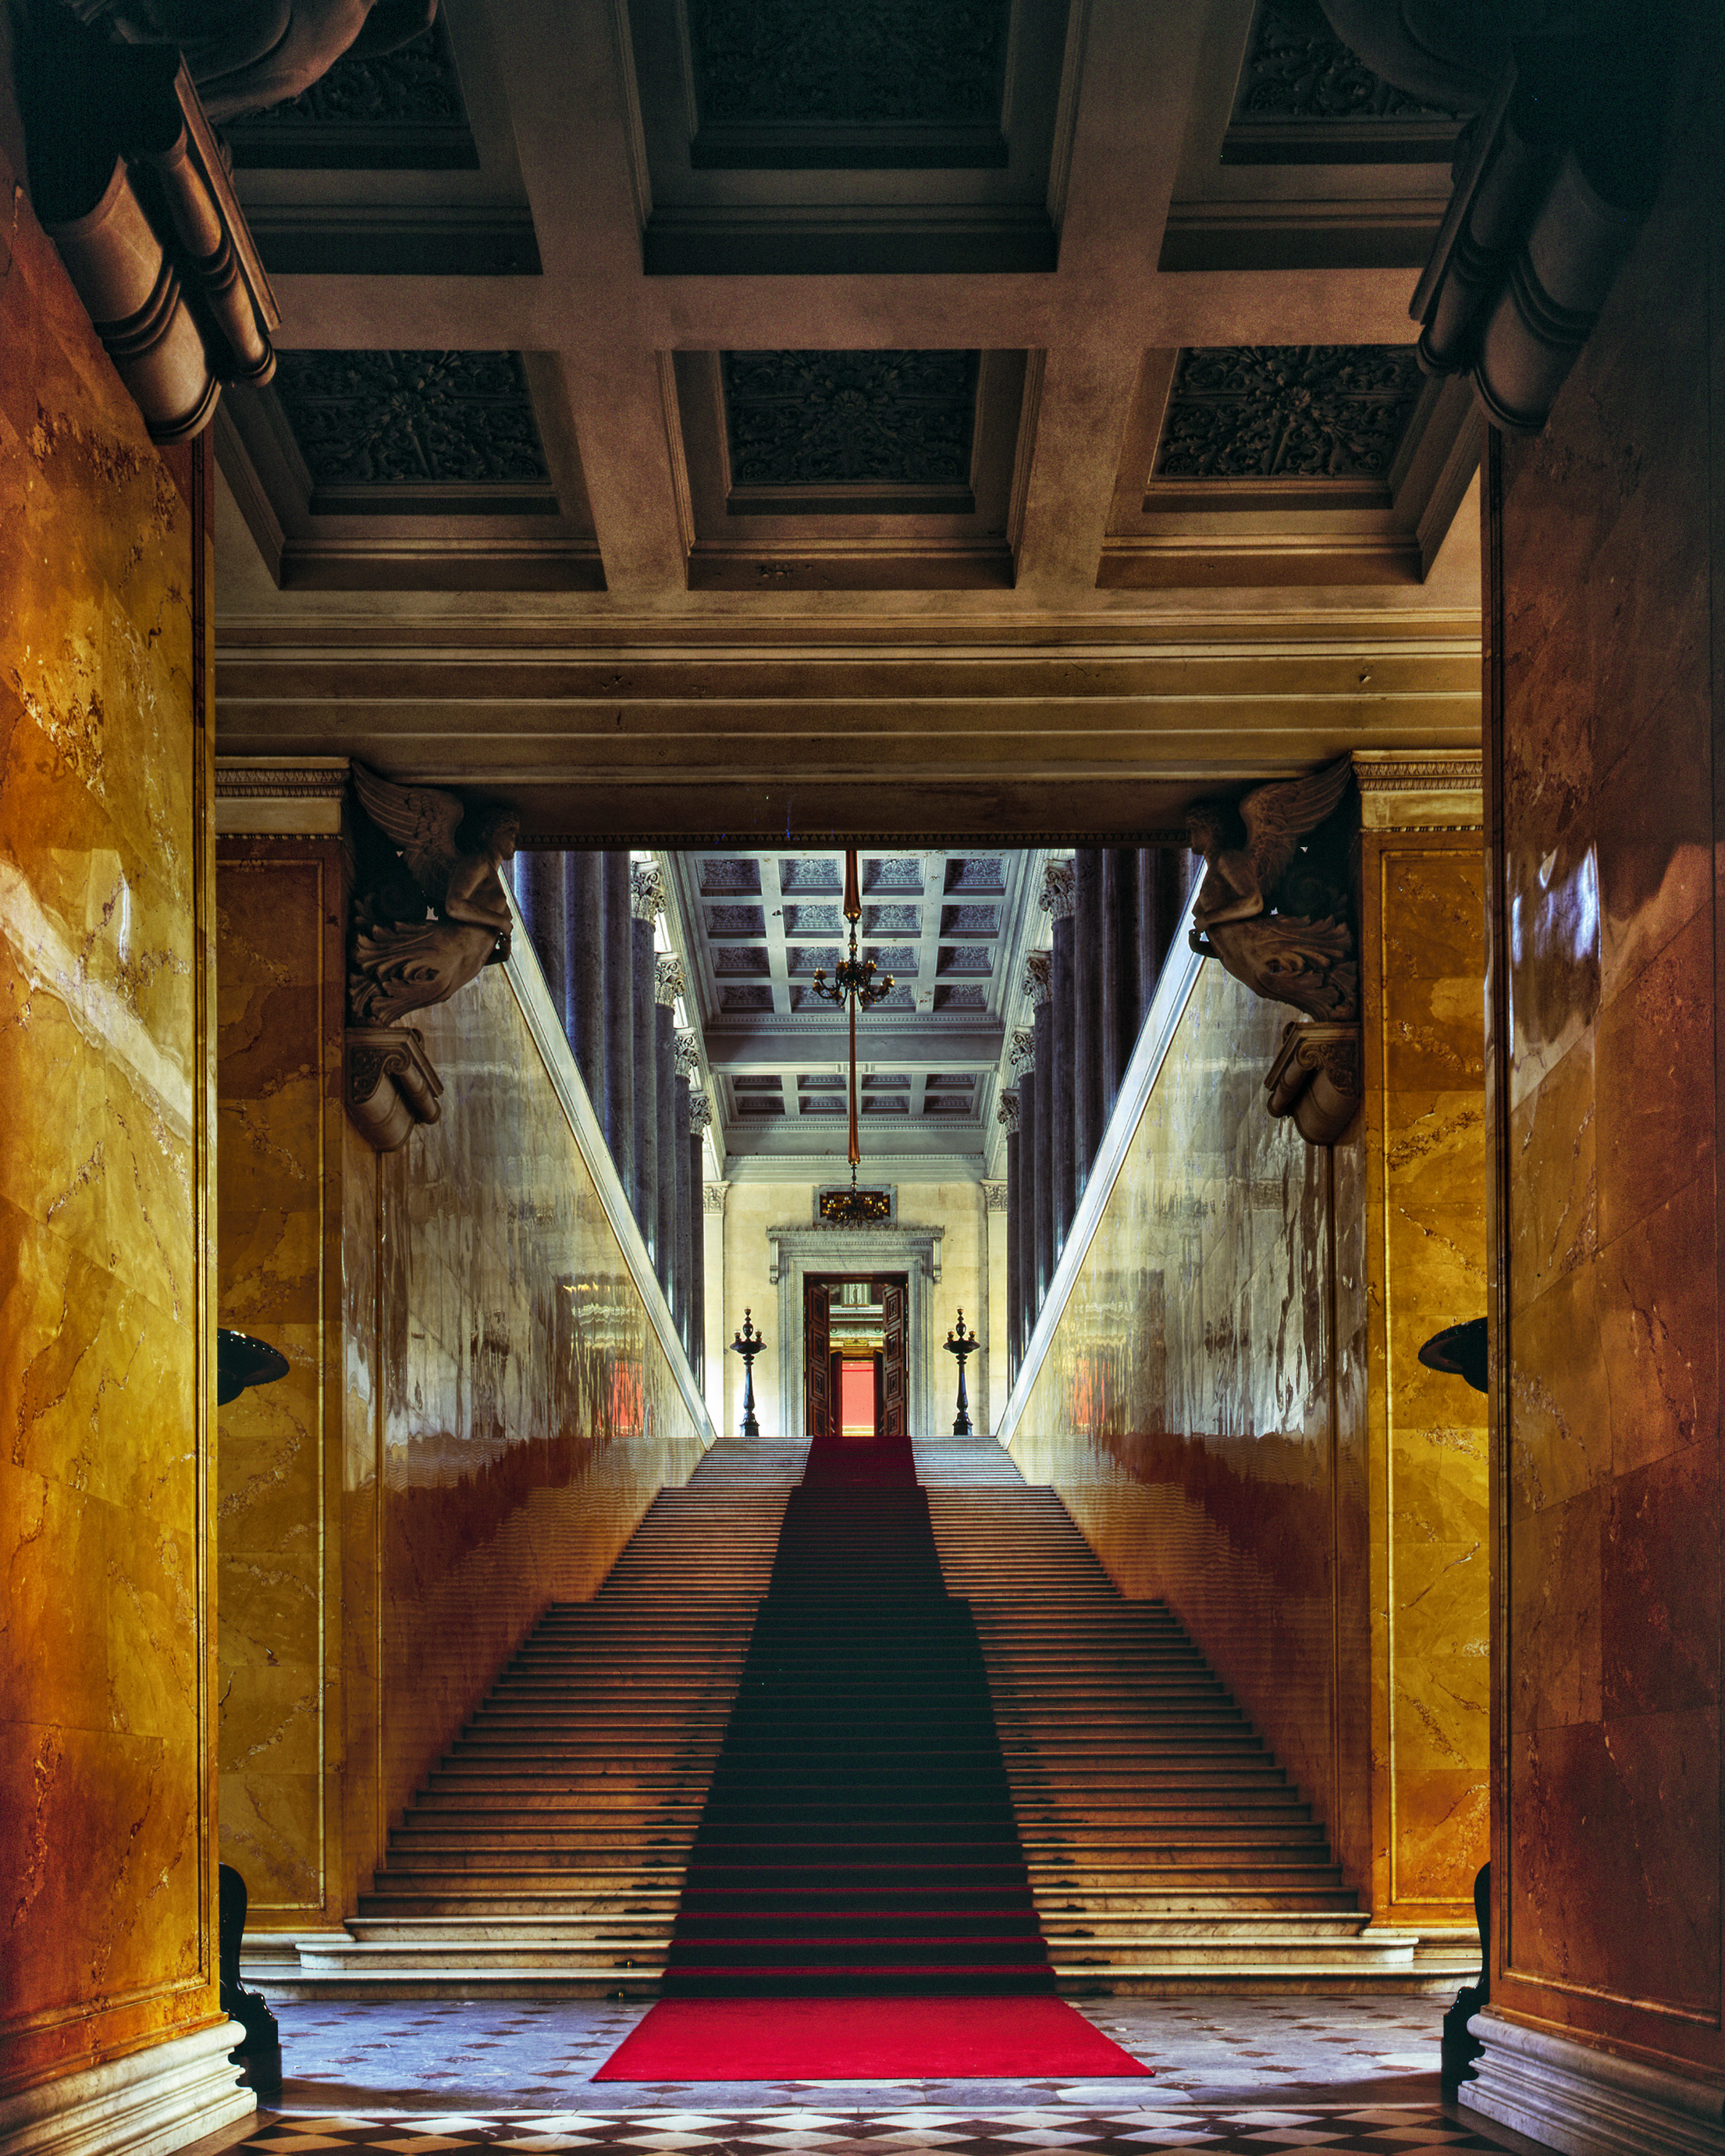 Entrance and Stairs of the new State Hermitage - - Saint Petersburg, Russia (1995)